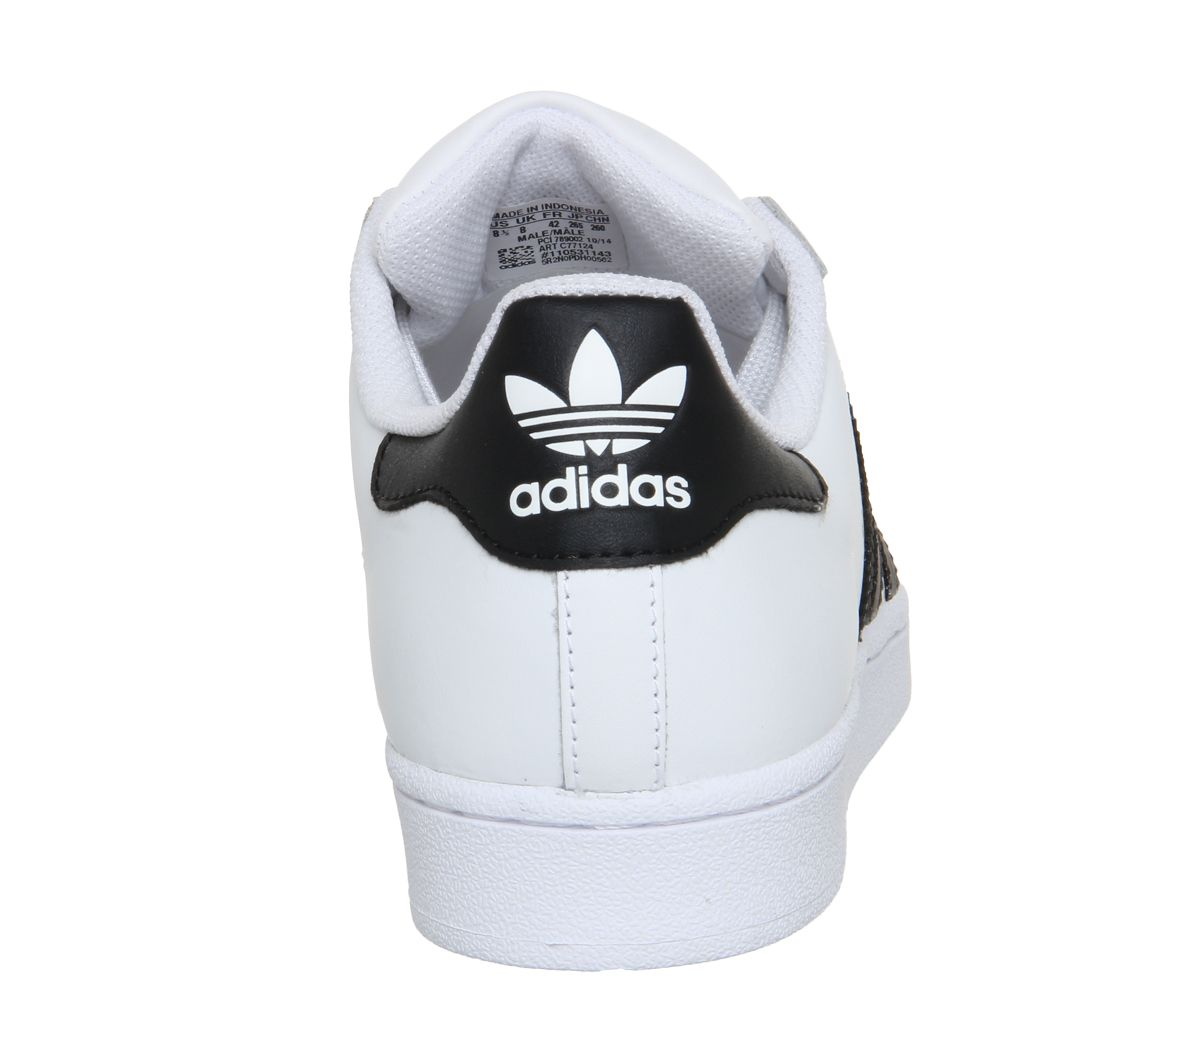 Mens-Adidas-Superstar-1-White-Black-Foundation-Trainers-Shoes thumbnail 10